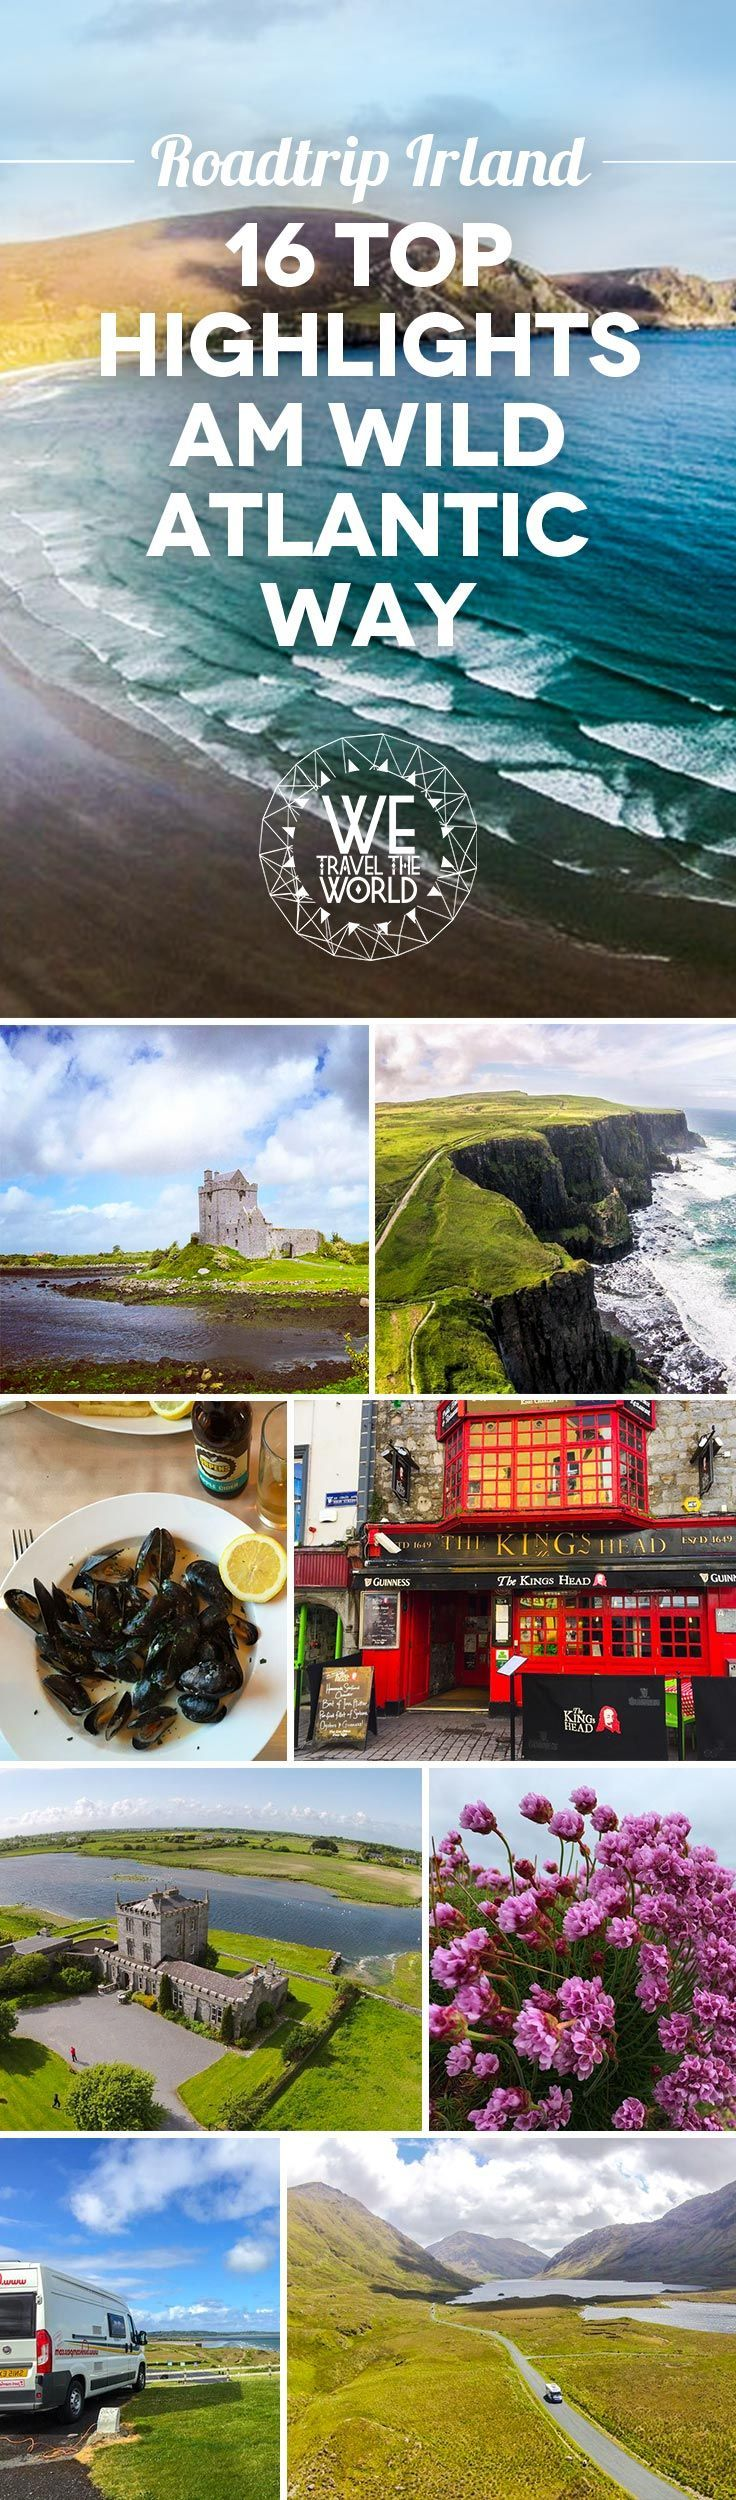 Roadtrip Irland: Unsere 16 Top Highlights am Wild Atlantic Way, inkl. Cliffs of Moher